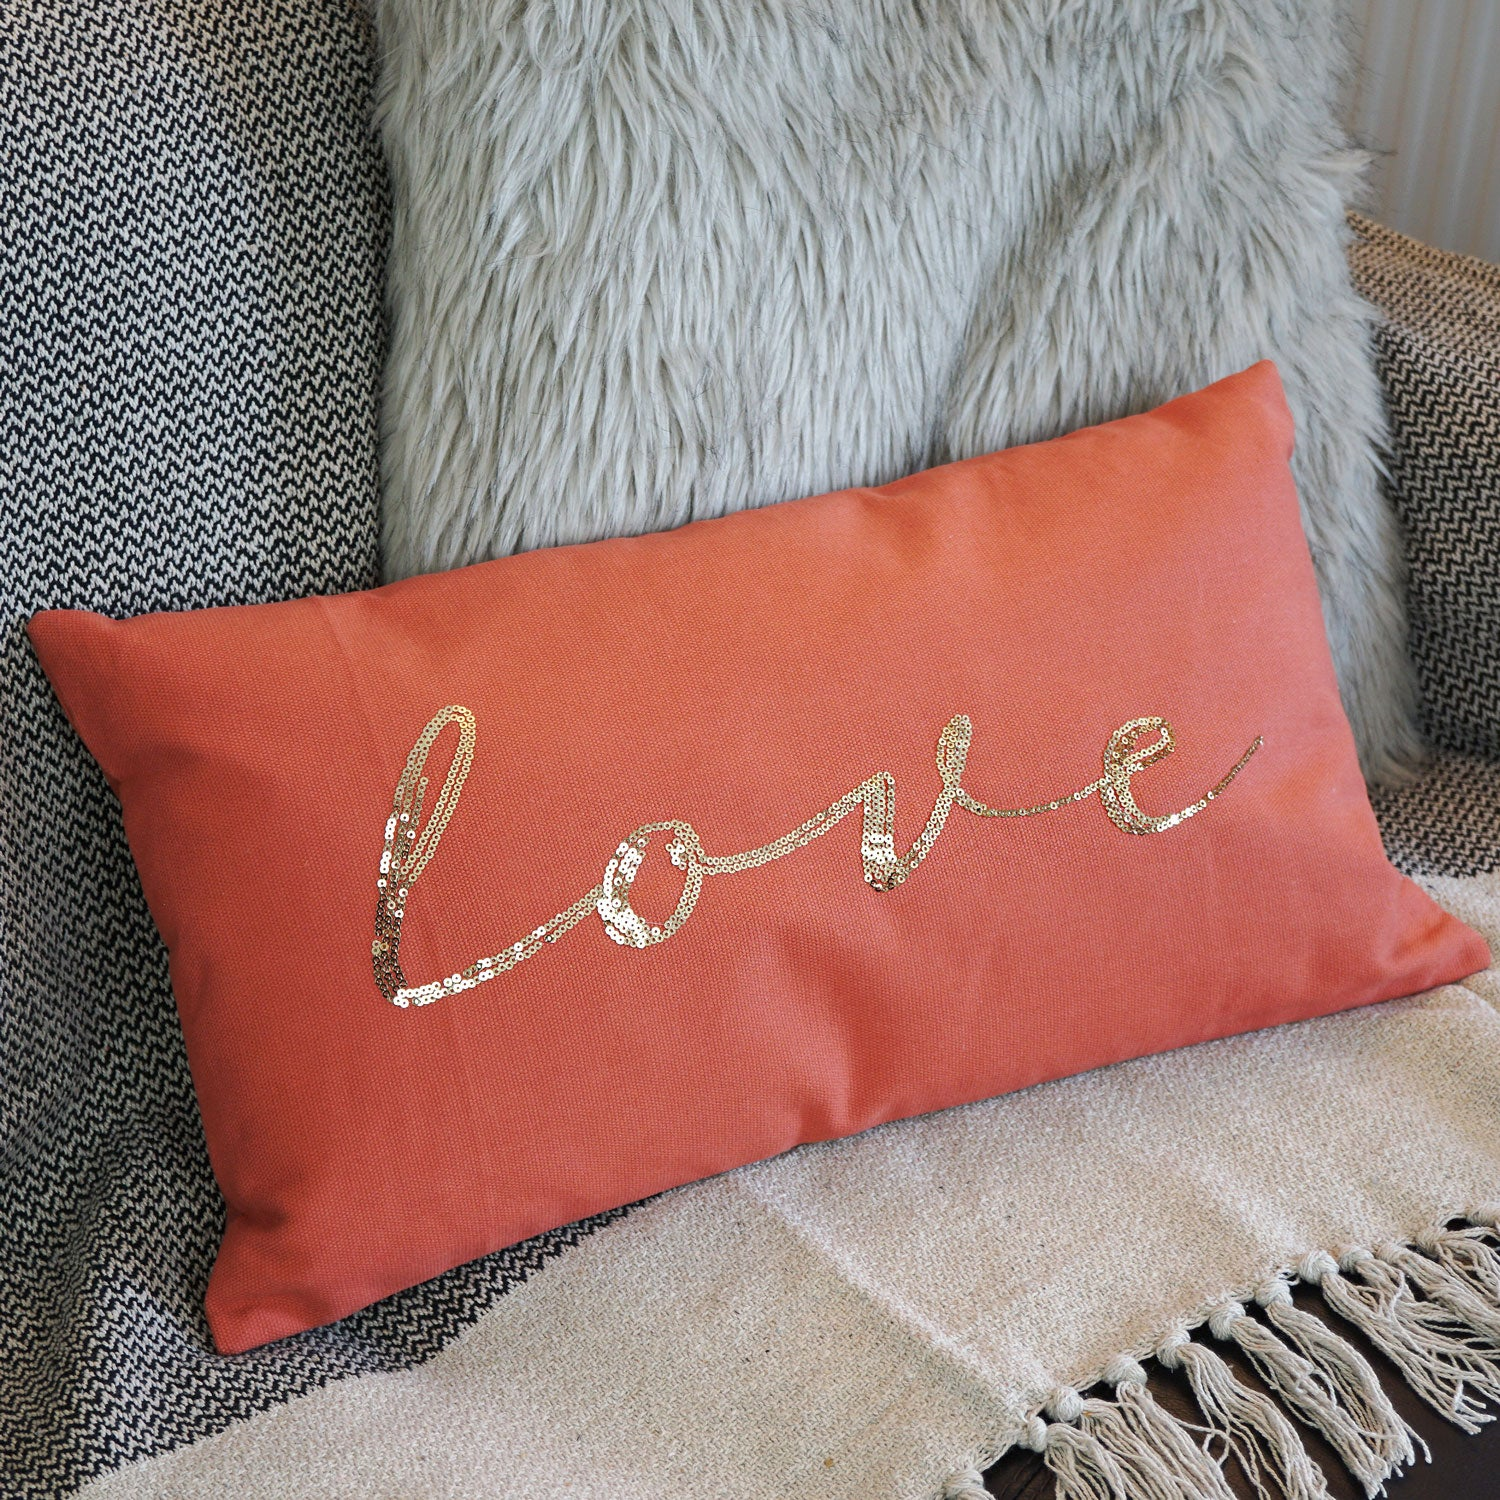 rectangle cushion orange love terracotta gold writing love sequins scandinavian style hygge